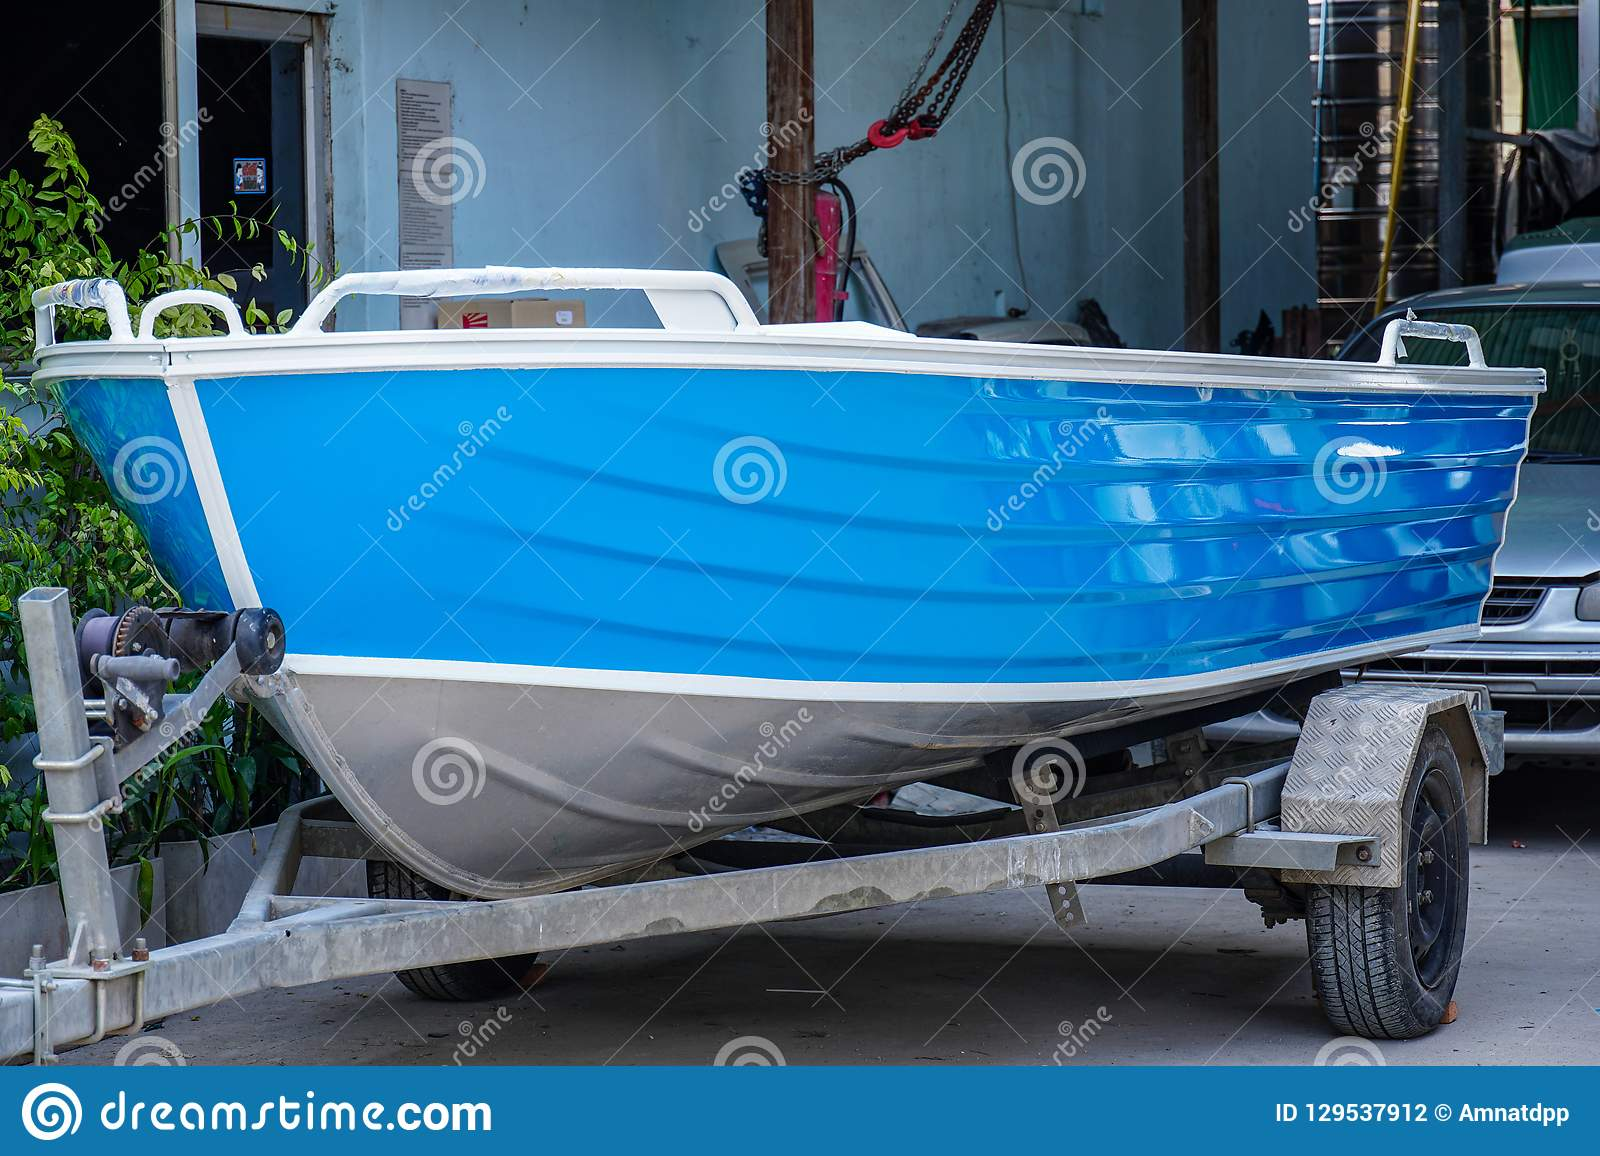 Paint The Boat In Blue And White Stock Photo Image Of